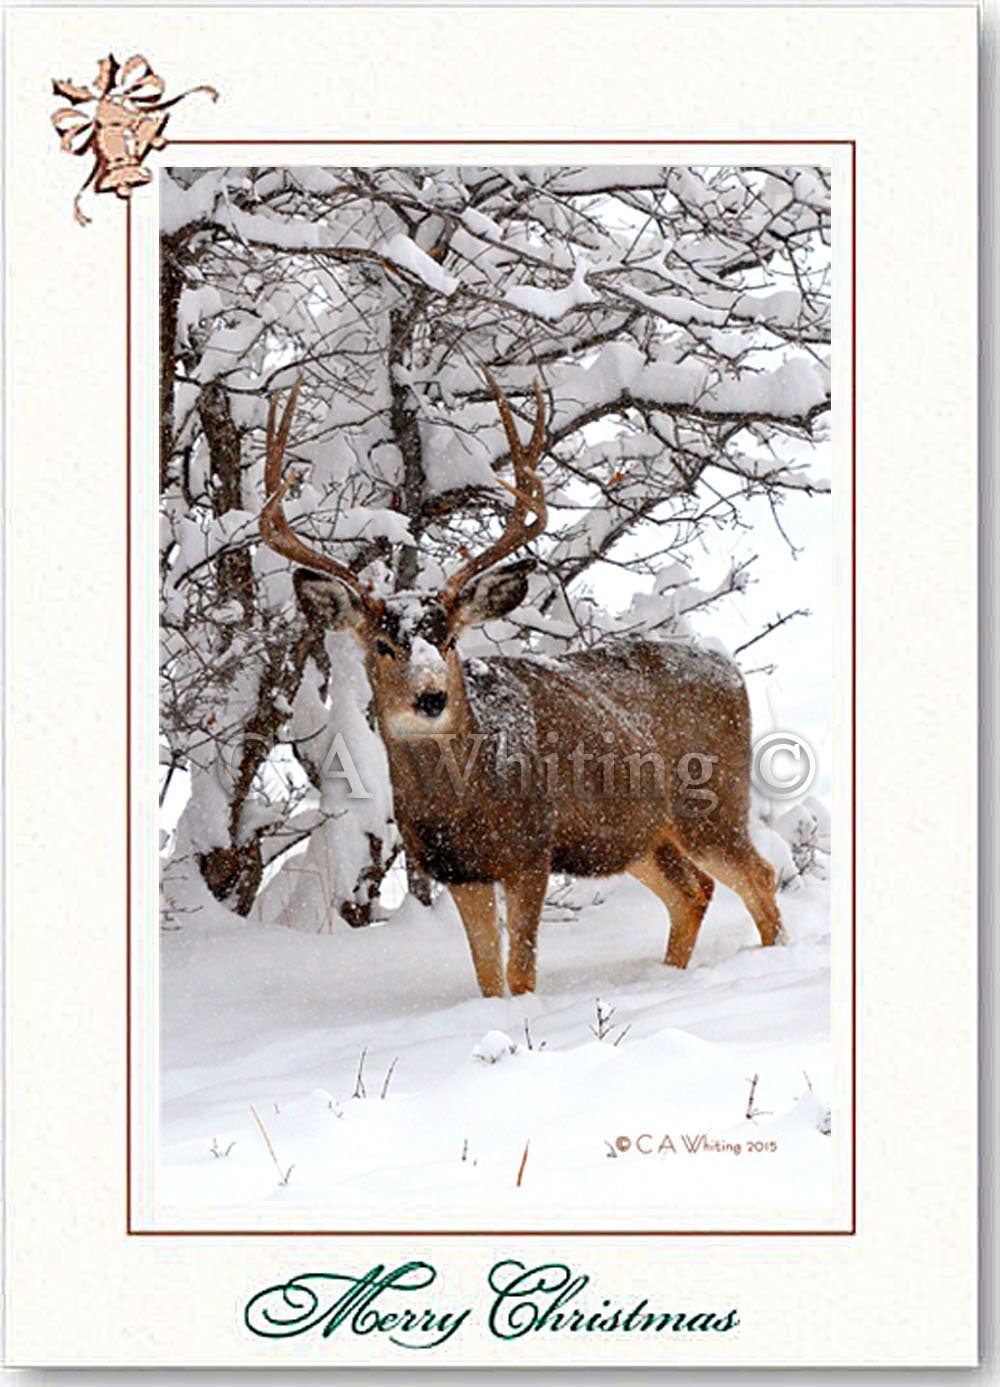 Wildlife Christmas Cards.Christmas Cards Wildlife And Scenic Images